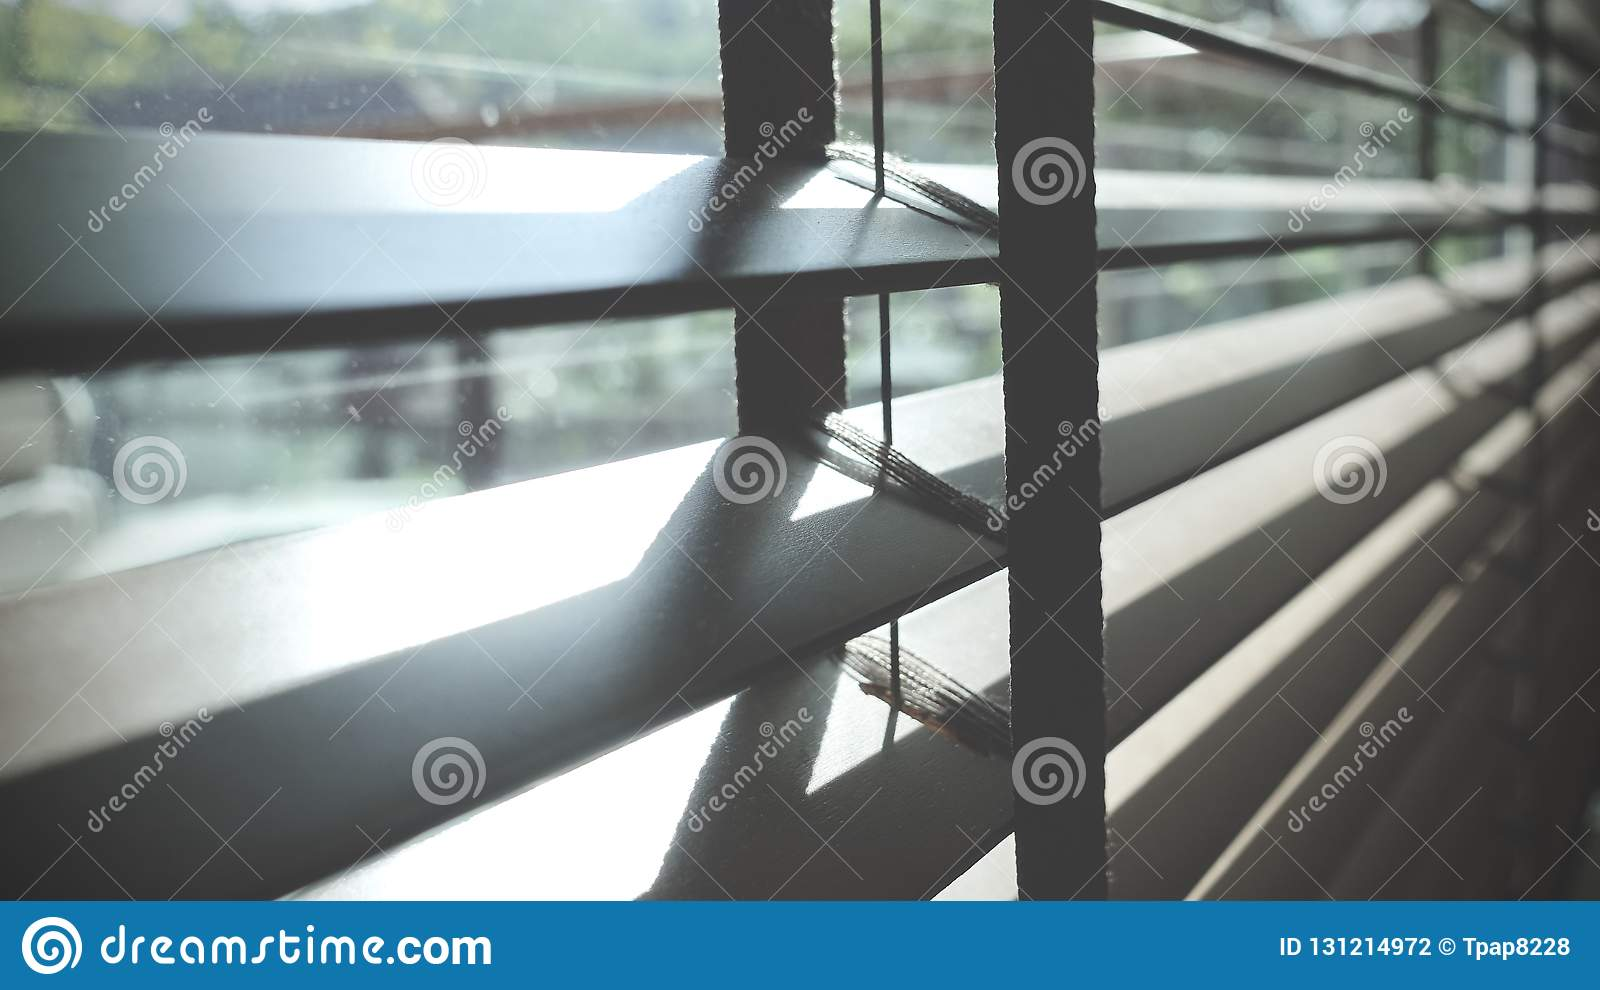 Blinds Evening Sun Light Outside Window Blinds Sunshine And Shadow On Window Blind Decorative Interior In Home Stock Photo Image Of Blind Blinds 131214972